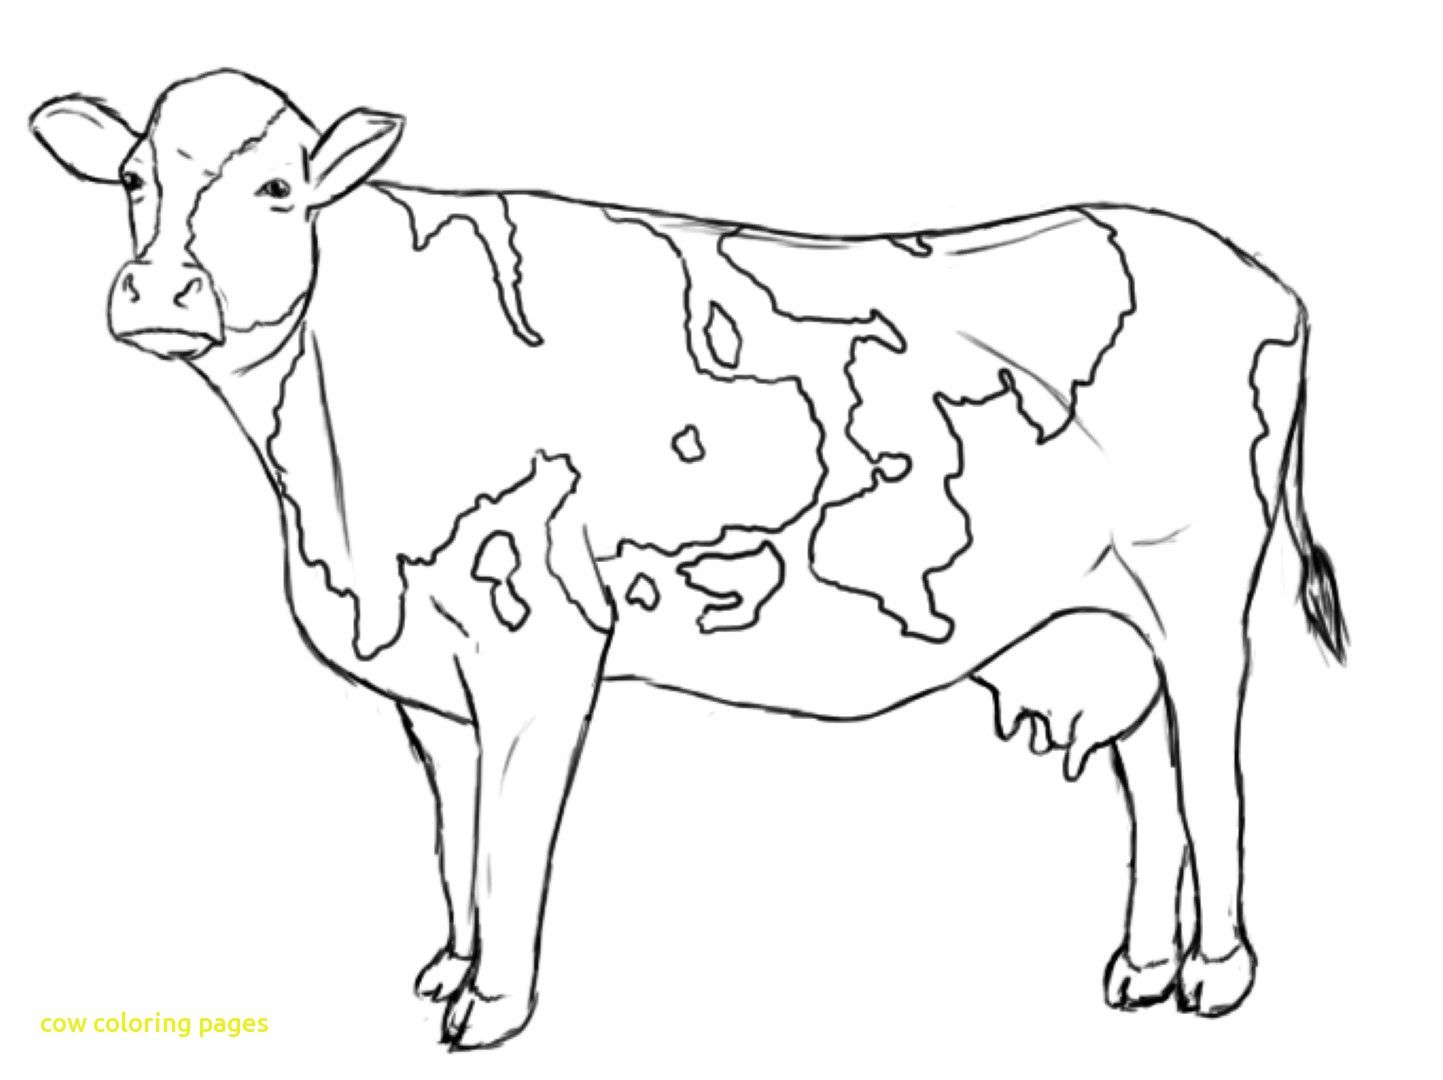 1443x1080 Suddenly Cartoon Cow Coloring Pages Freecolorngpages Co At Cow